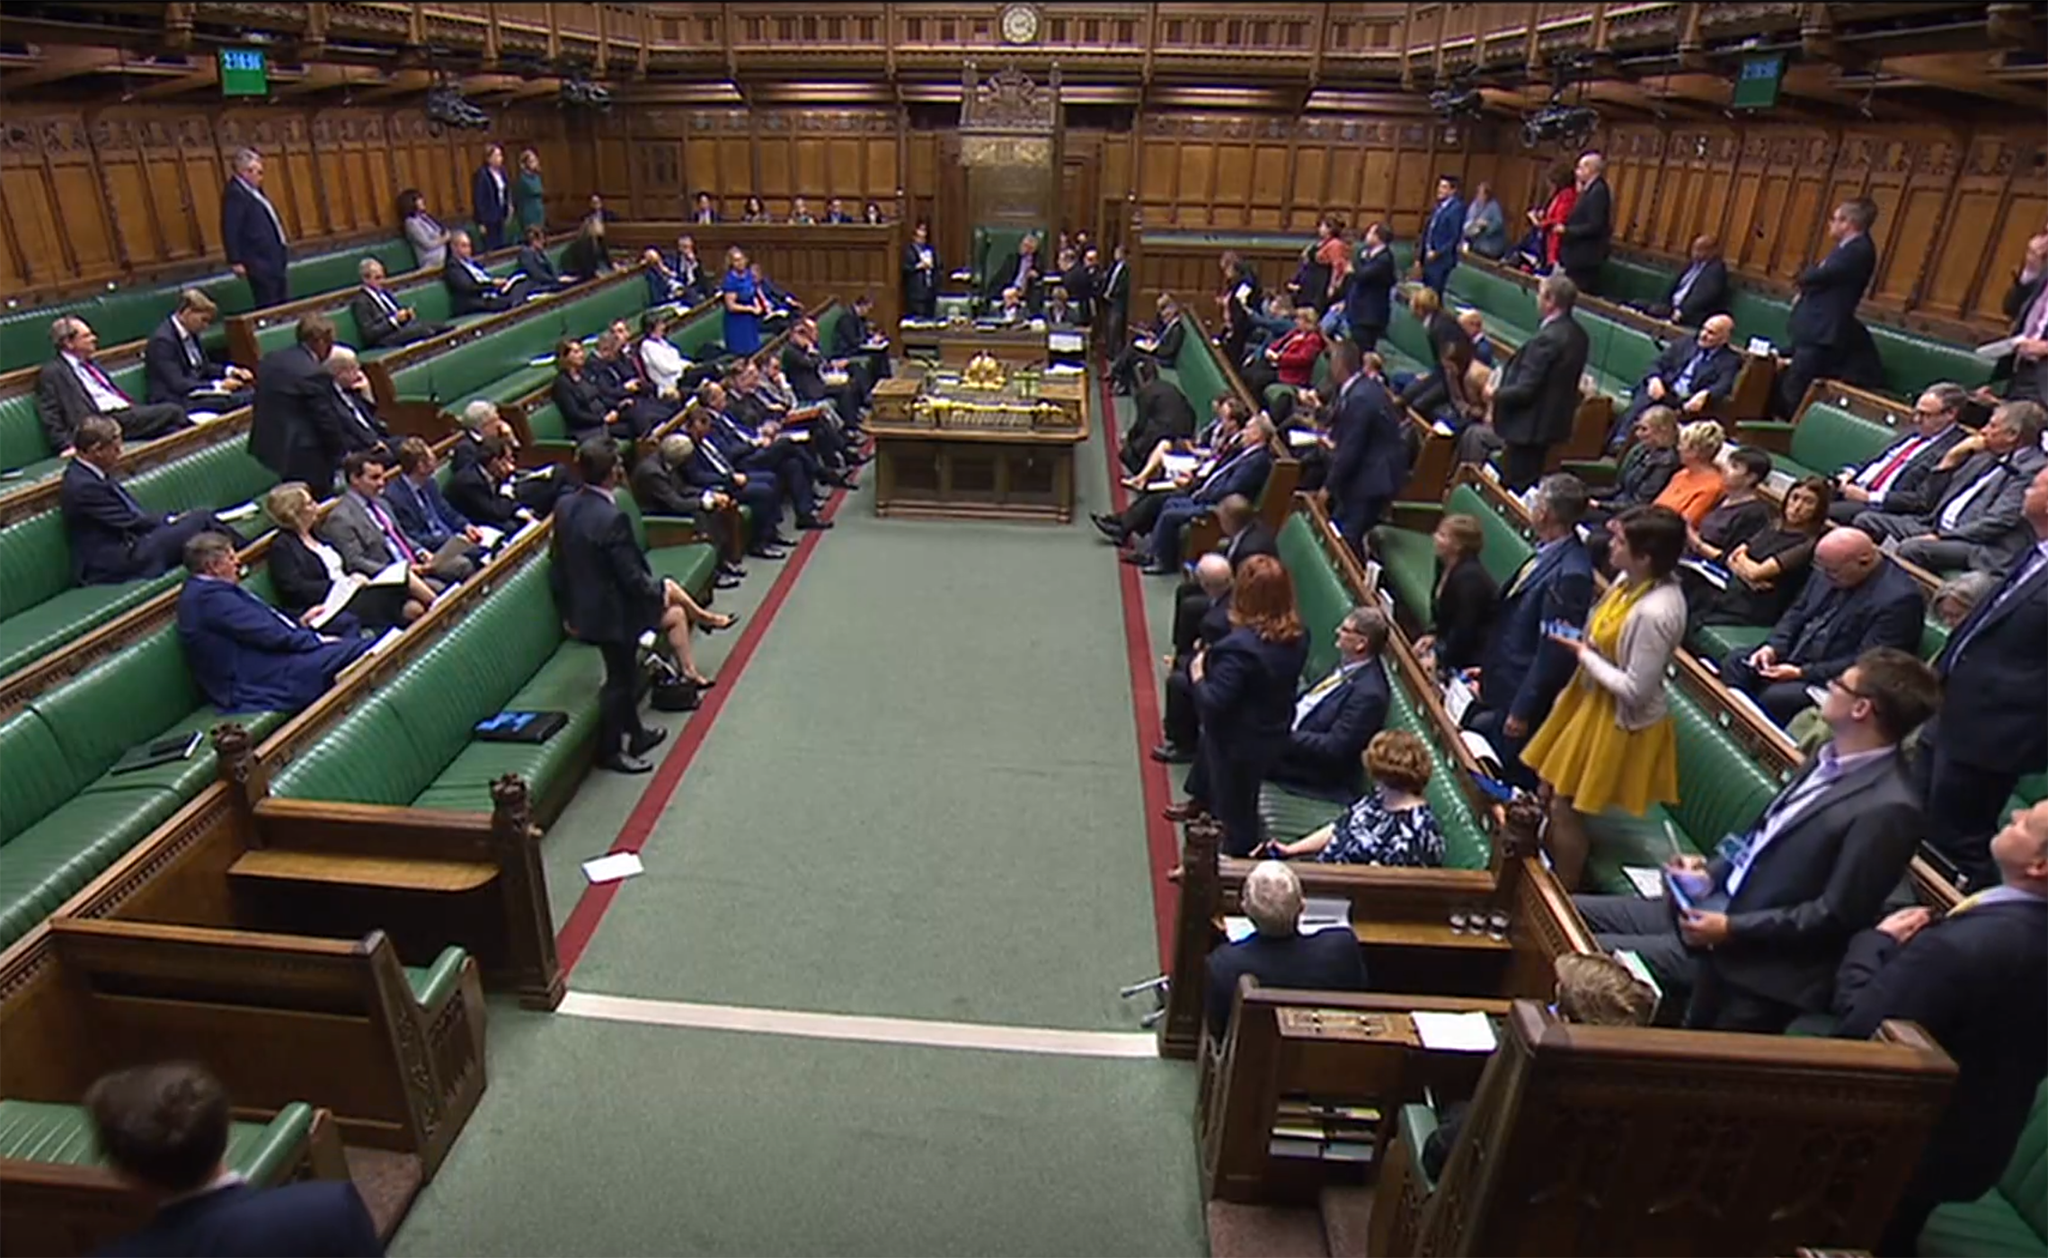 Parliament wasn't always this dysfunctional – but in just five years, it's been completely broken by Brexit